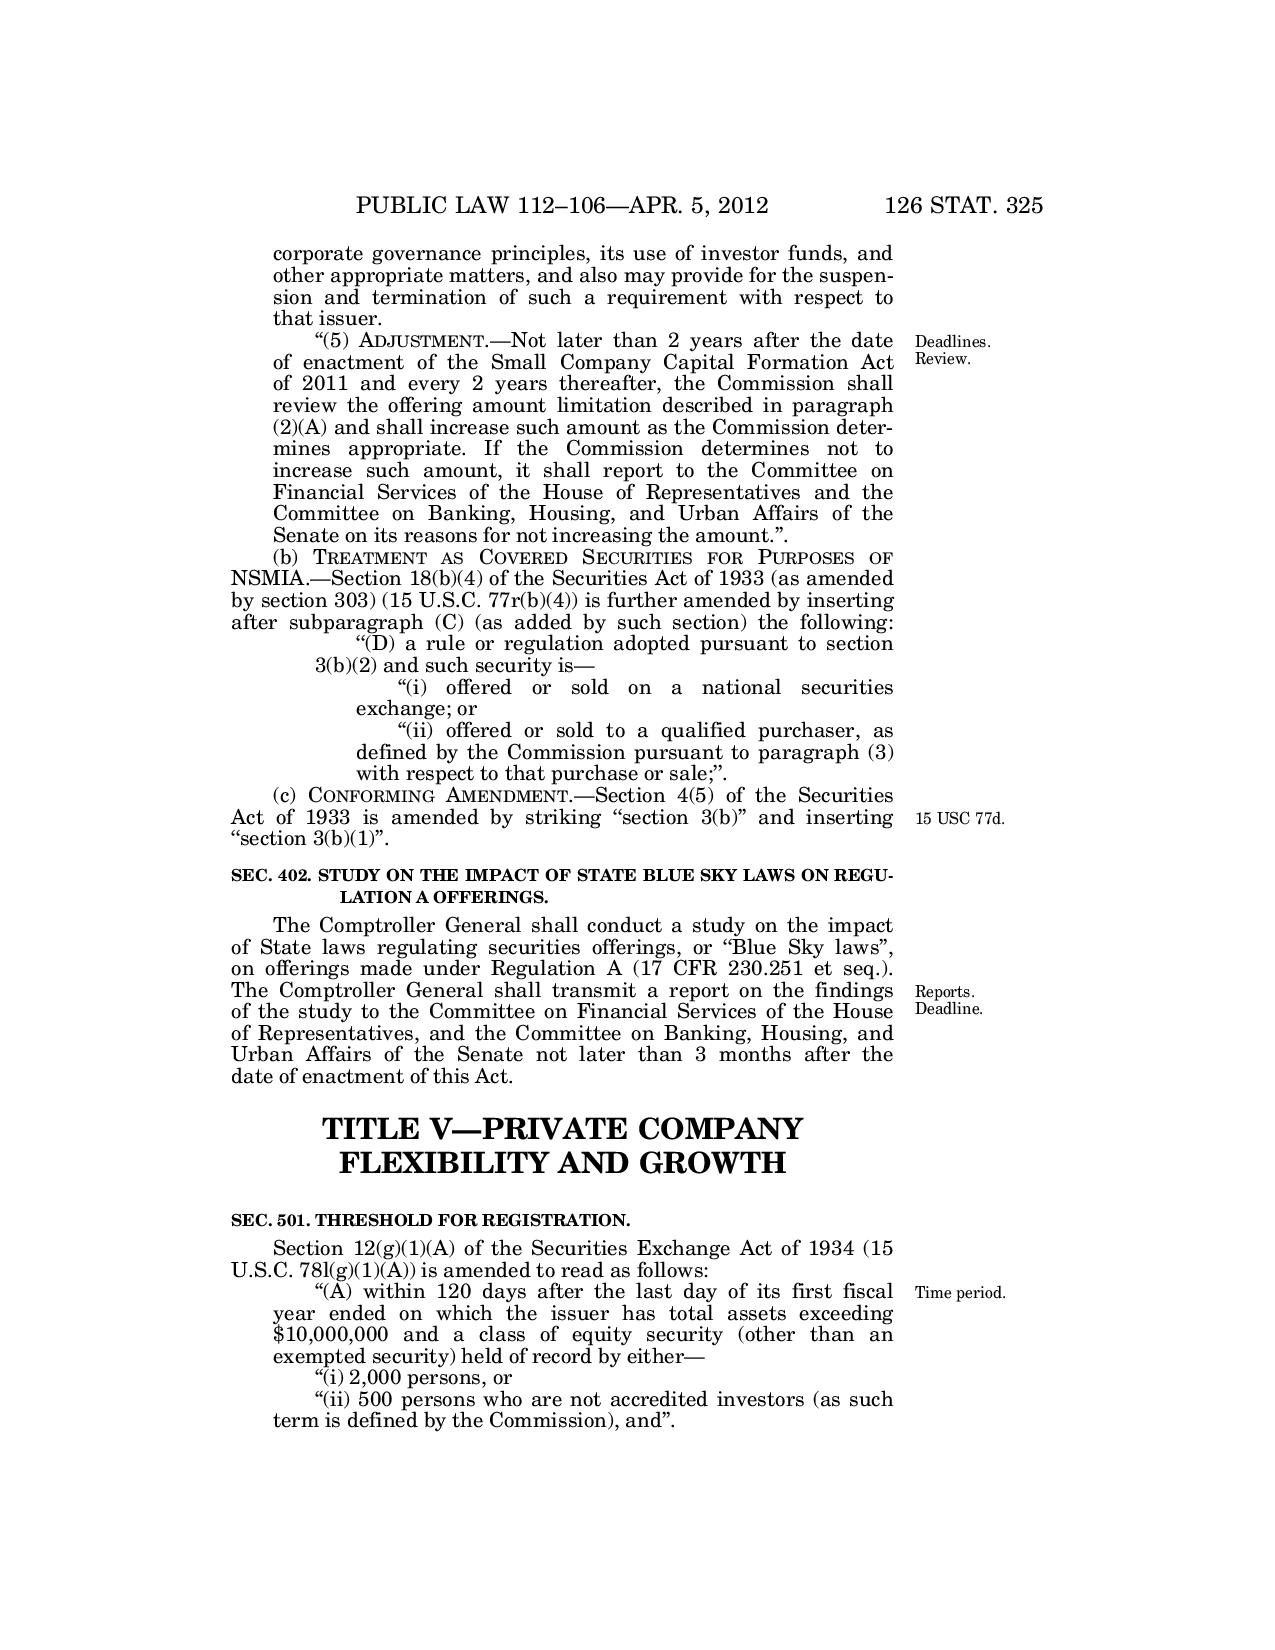 331653864-The-Jumpstart-Our-Business-Startups-Act-JOBS-Act-April-5-of-2012-page-021.jpg